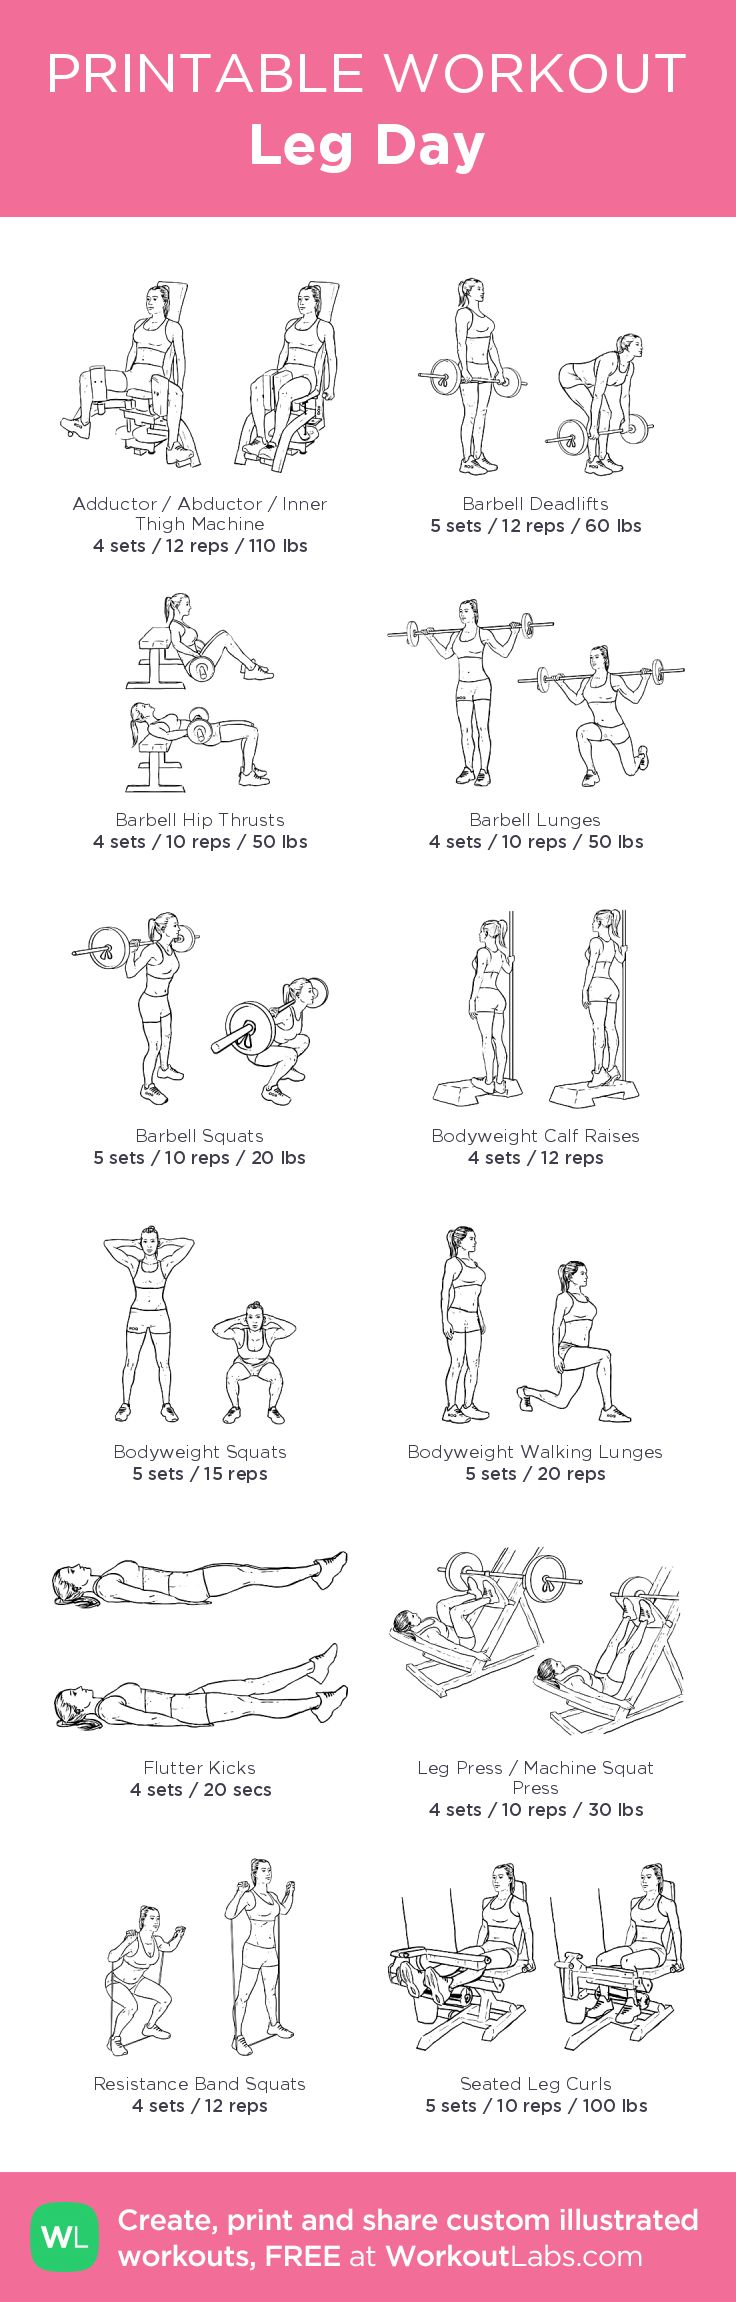 Leg Day– my custom exercise plan created at WorkoutLabs.com • Click through to download as a printable workout PDF #customworkout